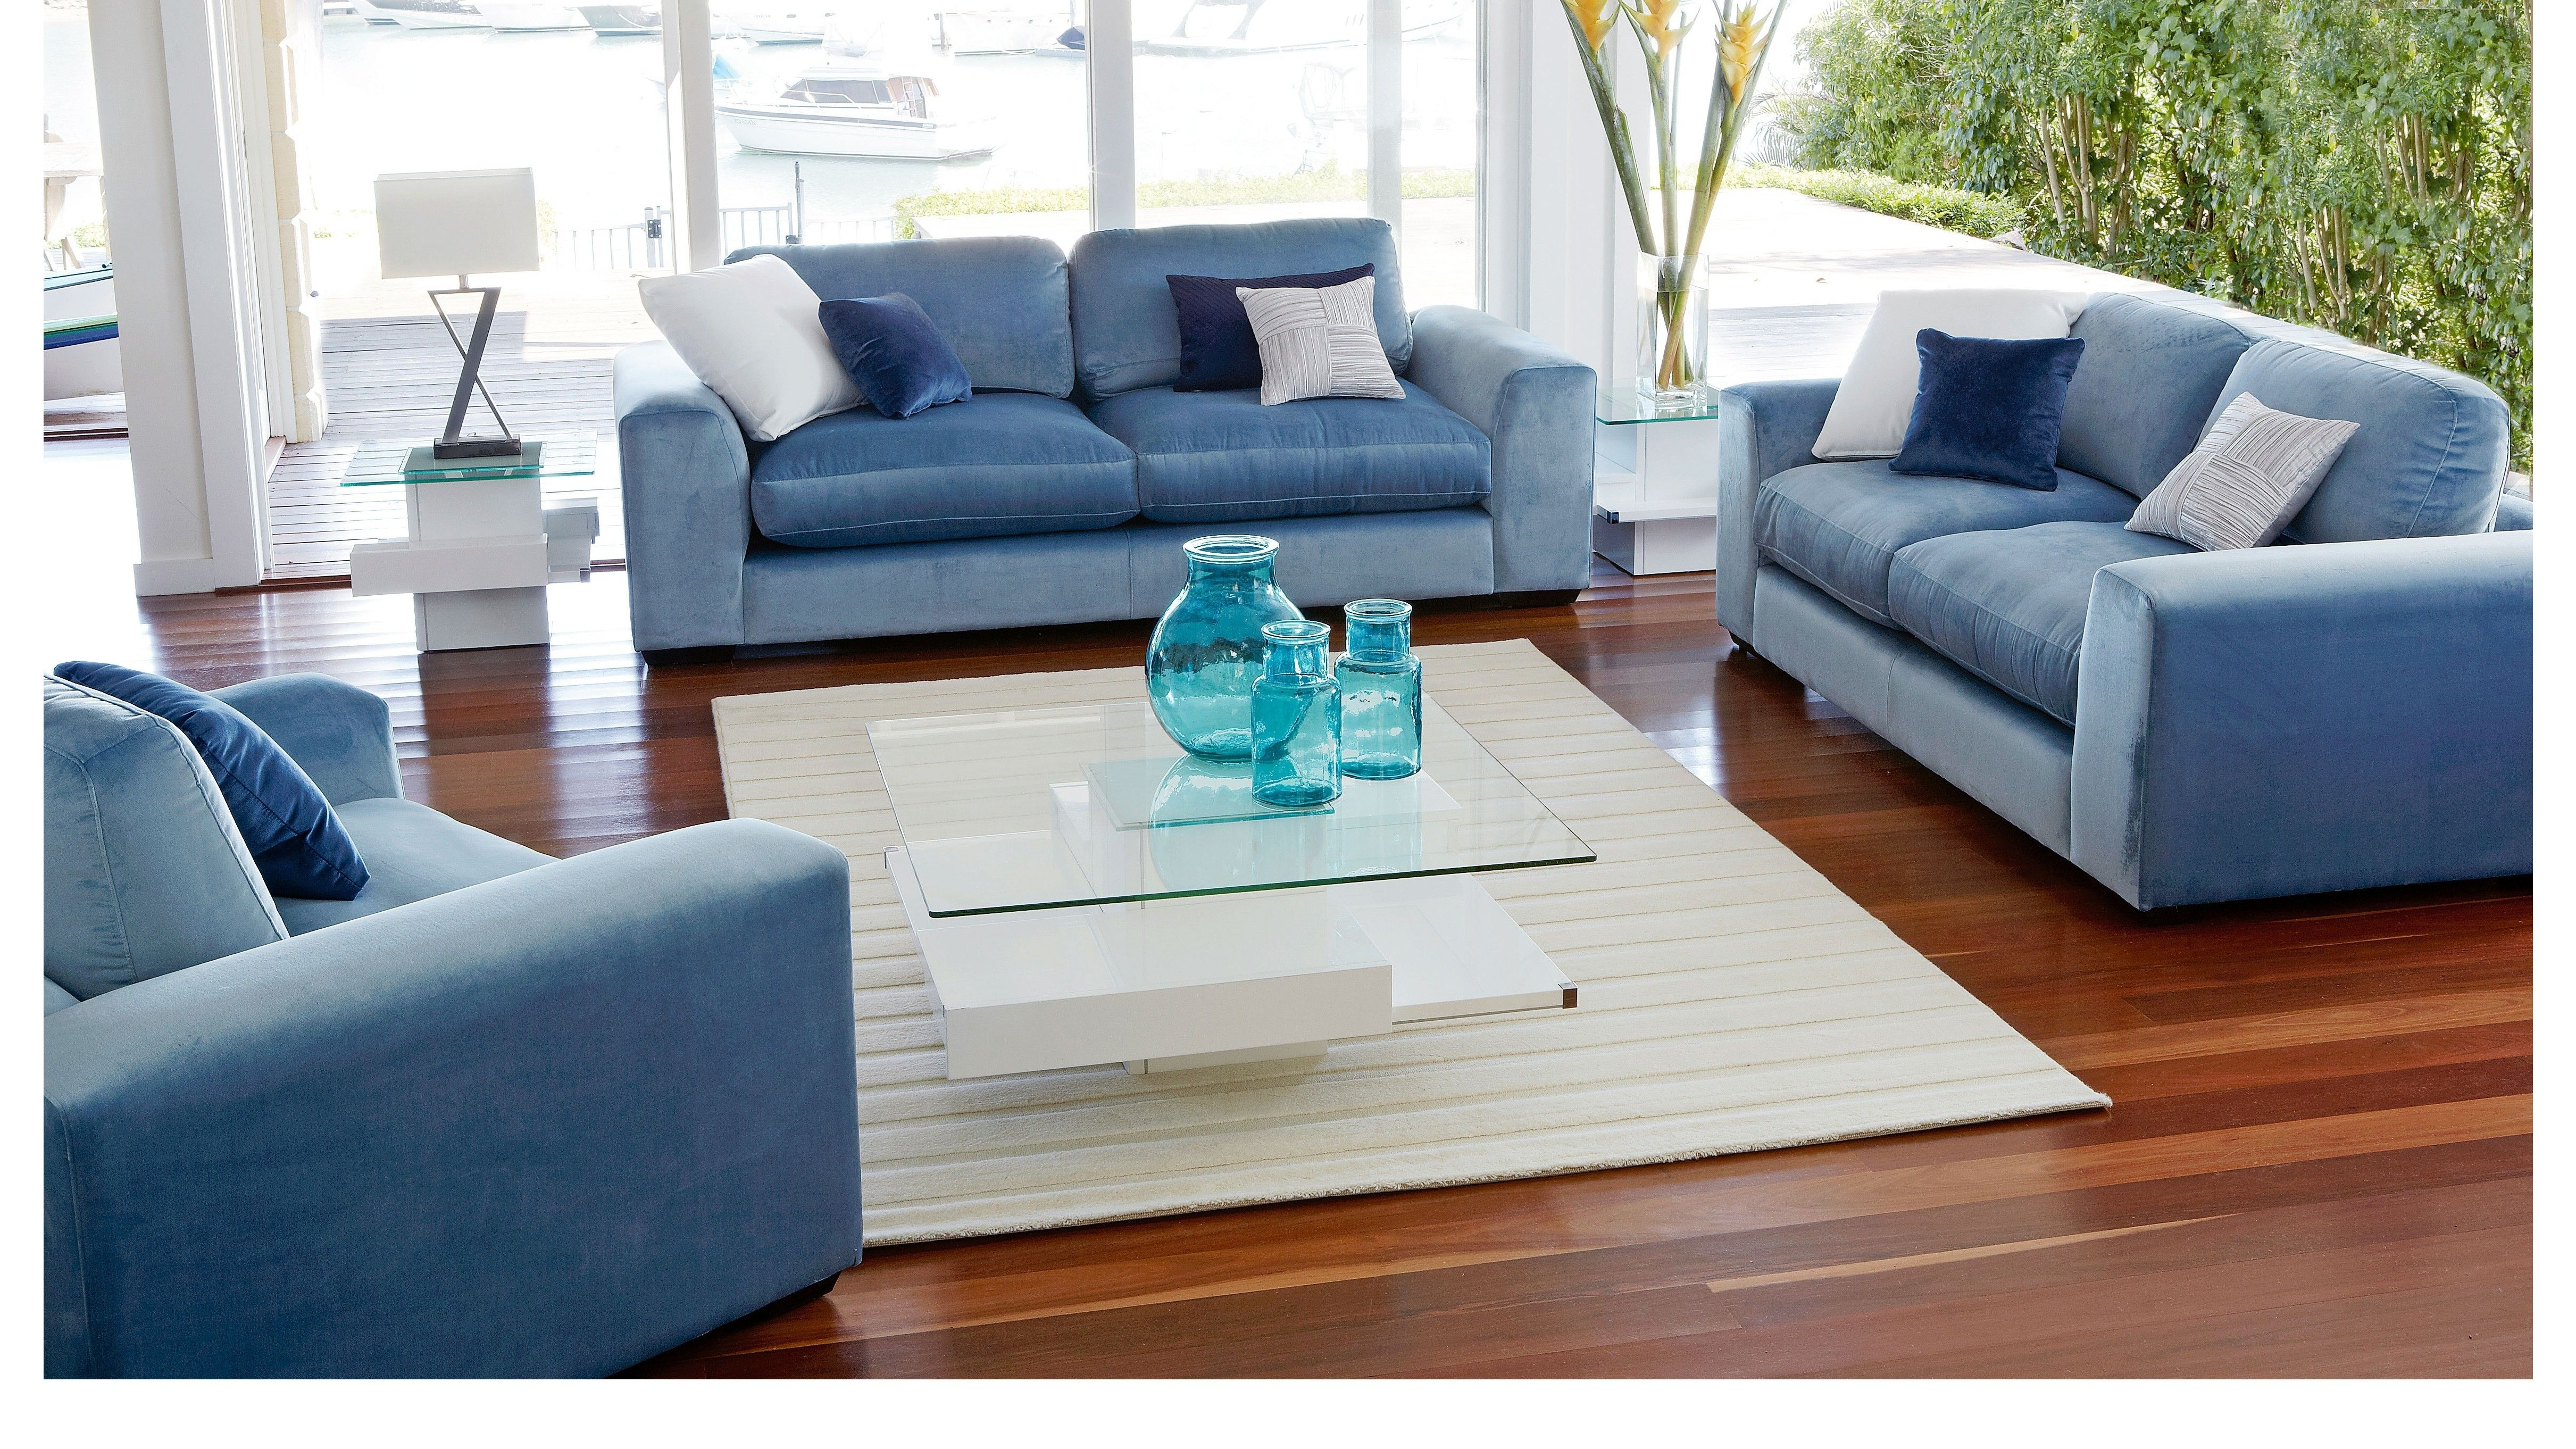 kirby sofa review compact corner bed catalina 3 seater in a chaise harvey norman